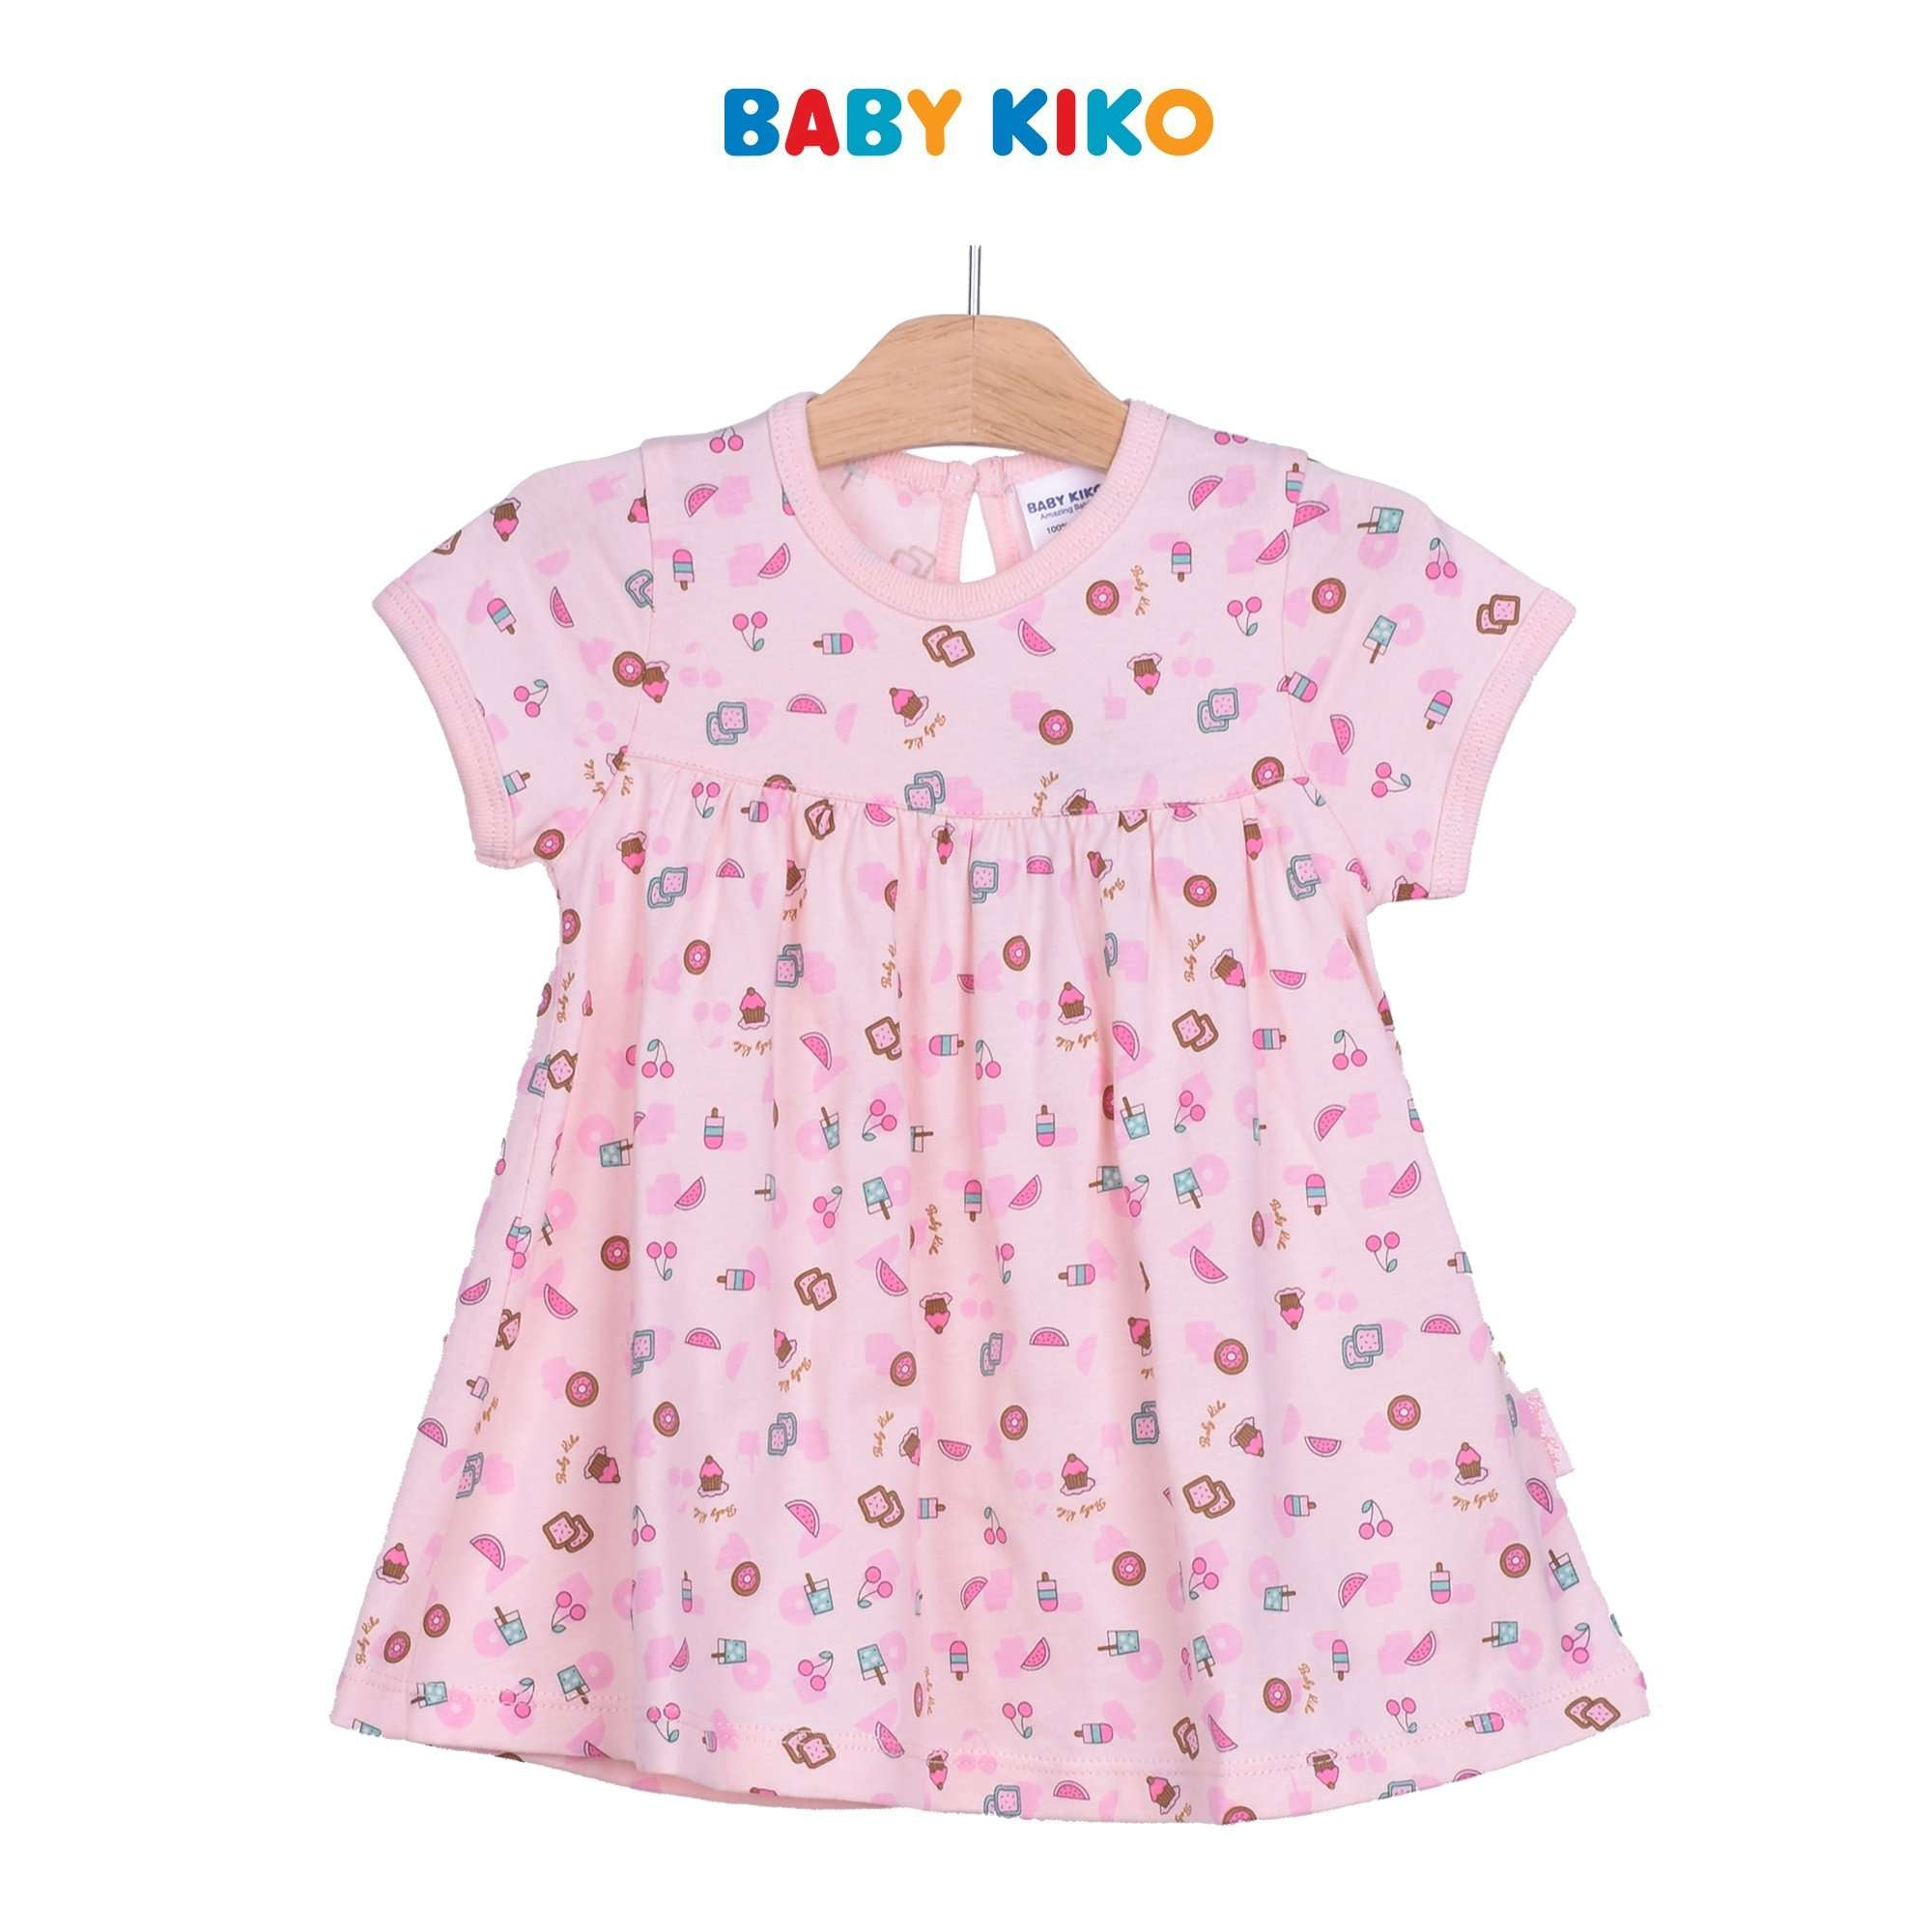 Baby KIKO Baby Girl Short Sleeve Dress - Pink 320149-331 : Buy Baby KIKO online at CMG.MY